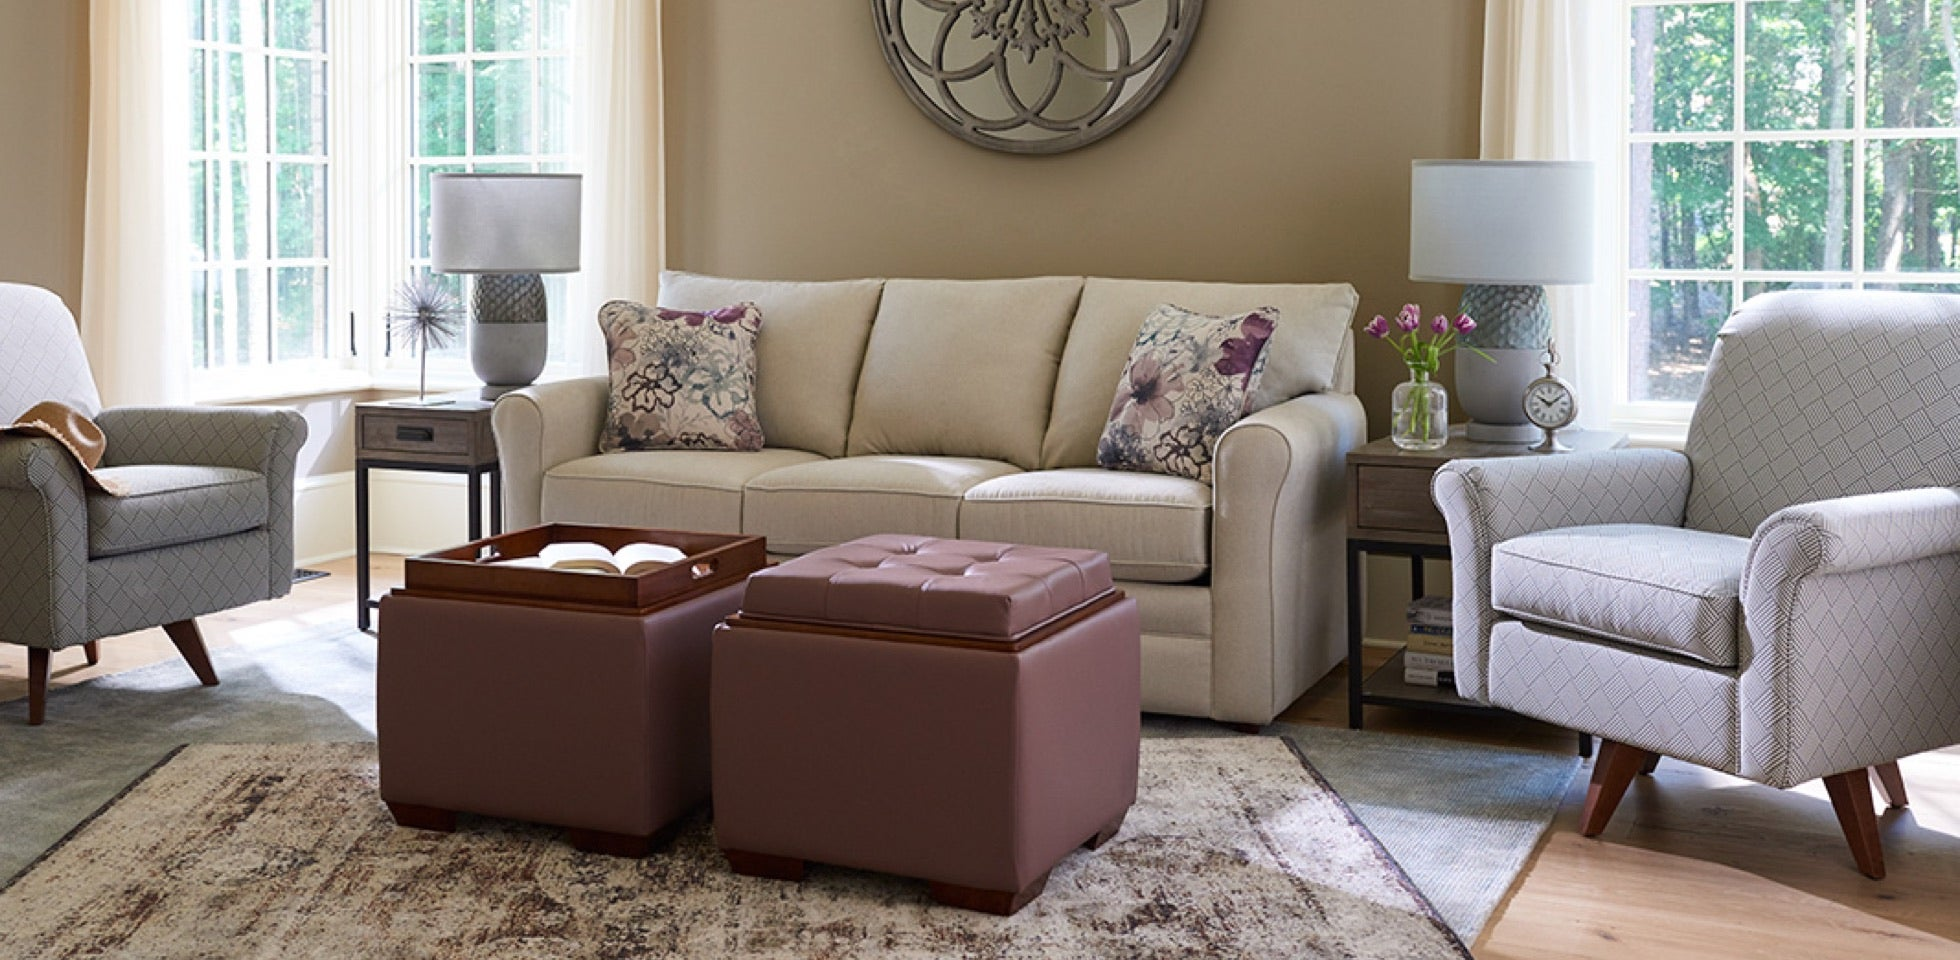 Family Favorite  room scene with Leah Queen Sleep Sofa, Leo Ottoman, Ronnie High Leg Swivel Recliner with area rugs and accessories